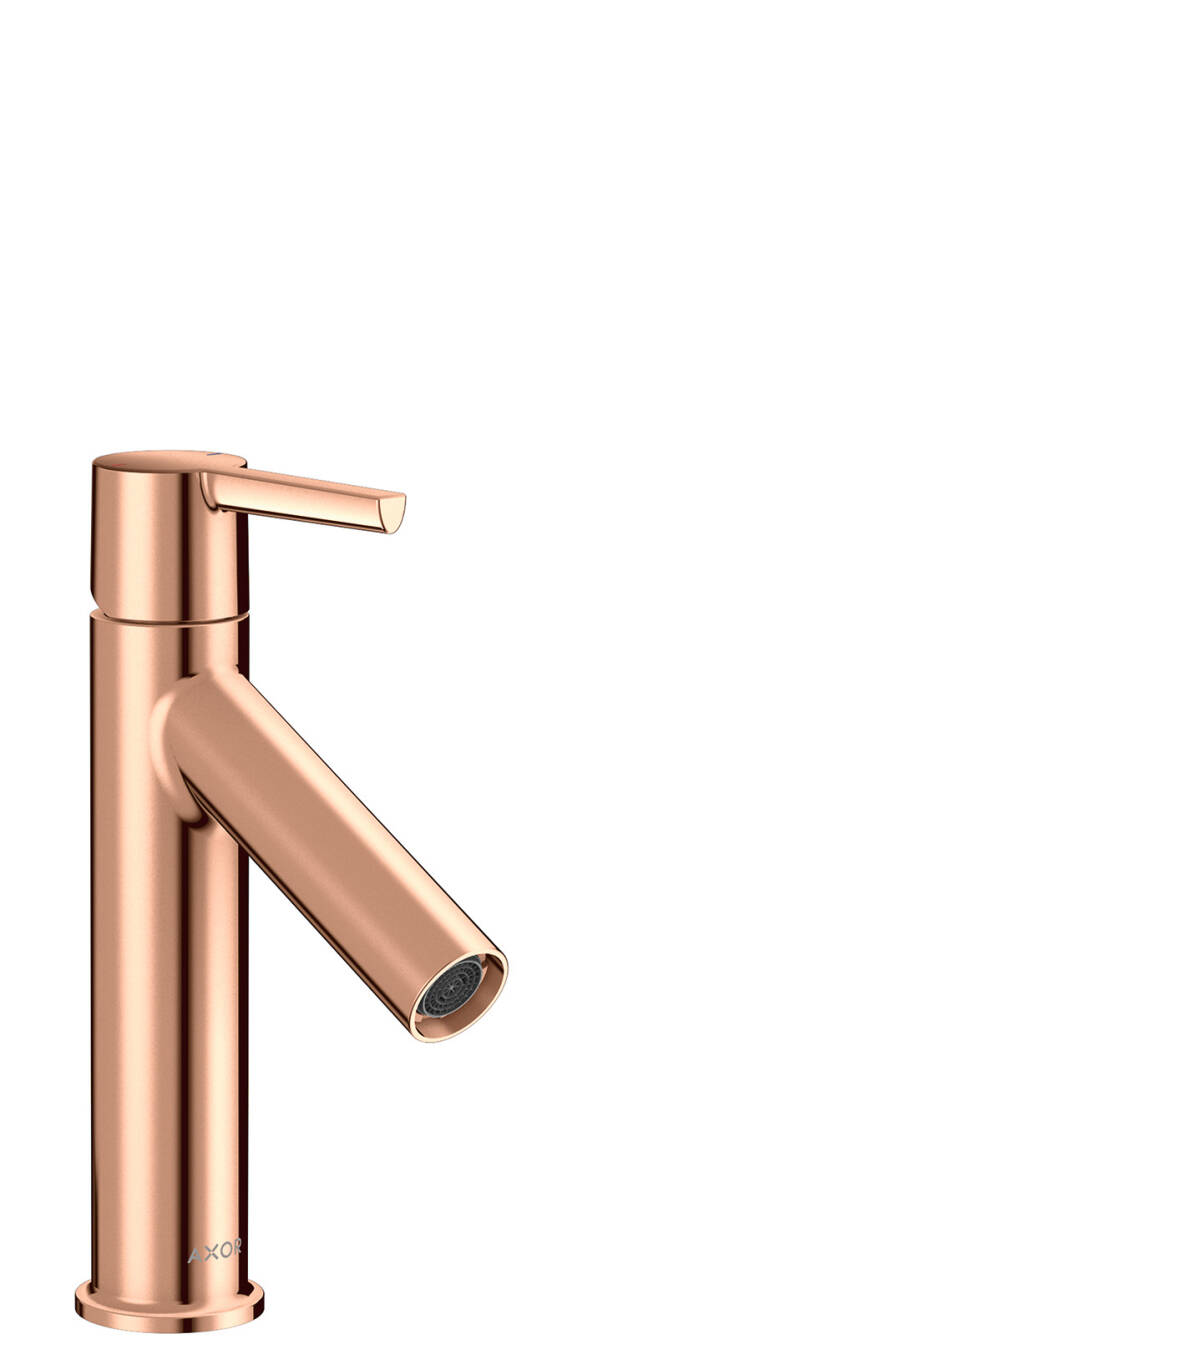 Single lever basin mixer 100 with lever handle and waste set, Polished Red Gold, 10003300